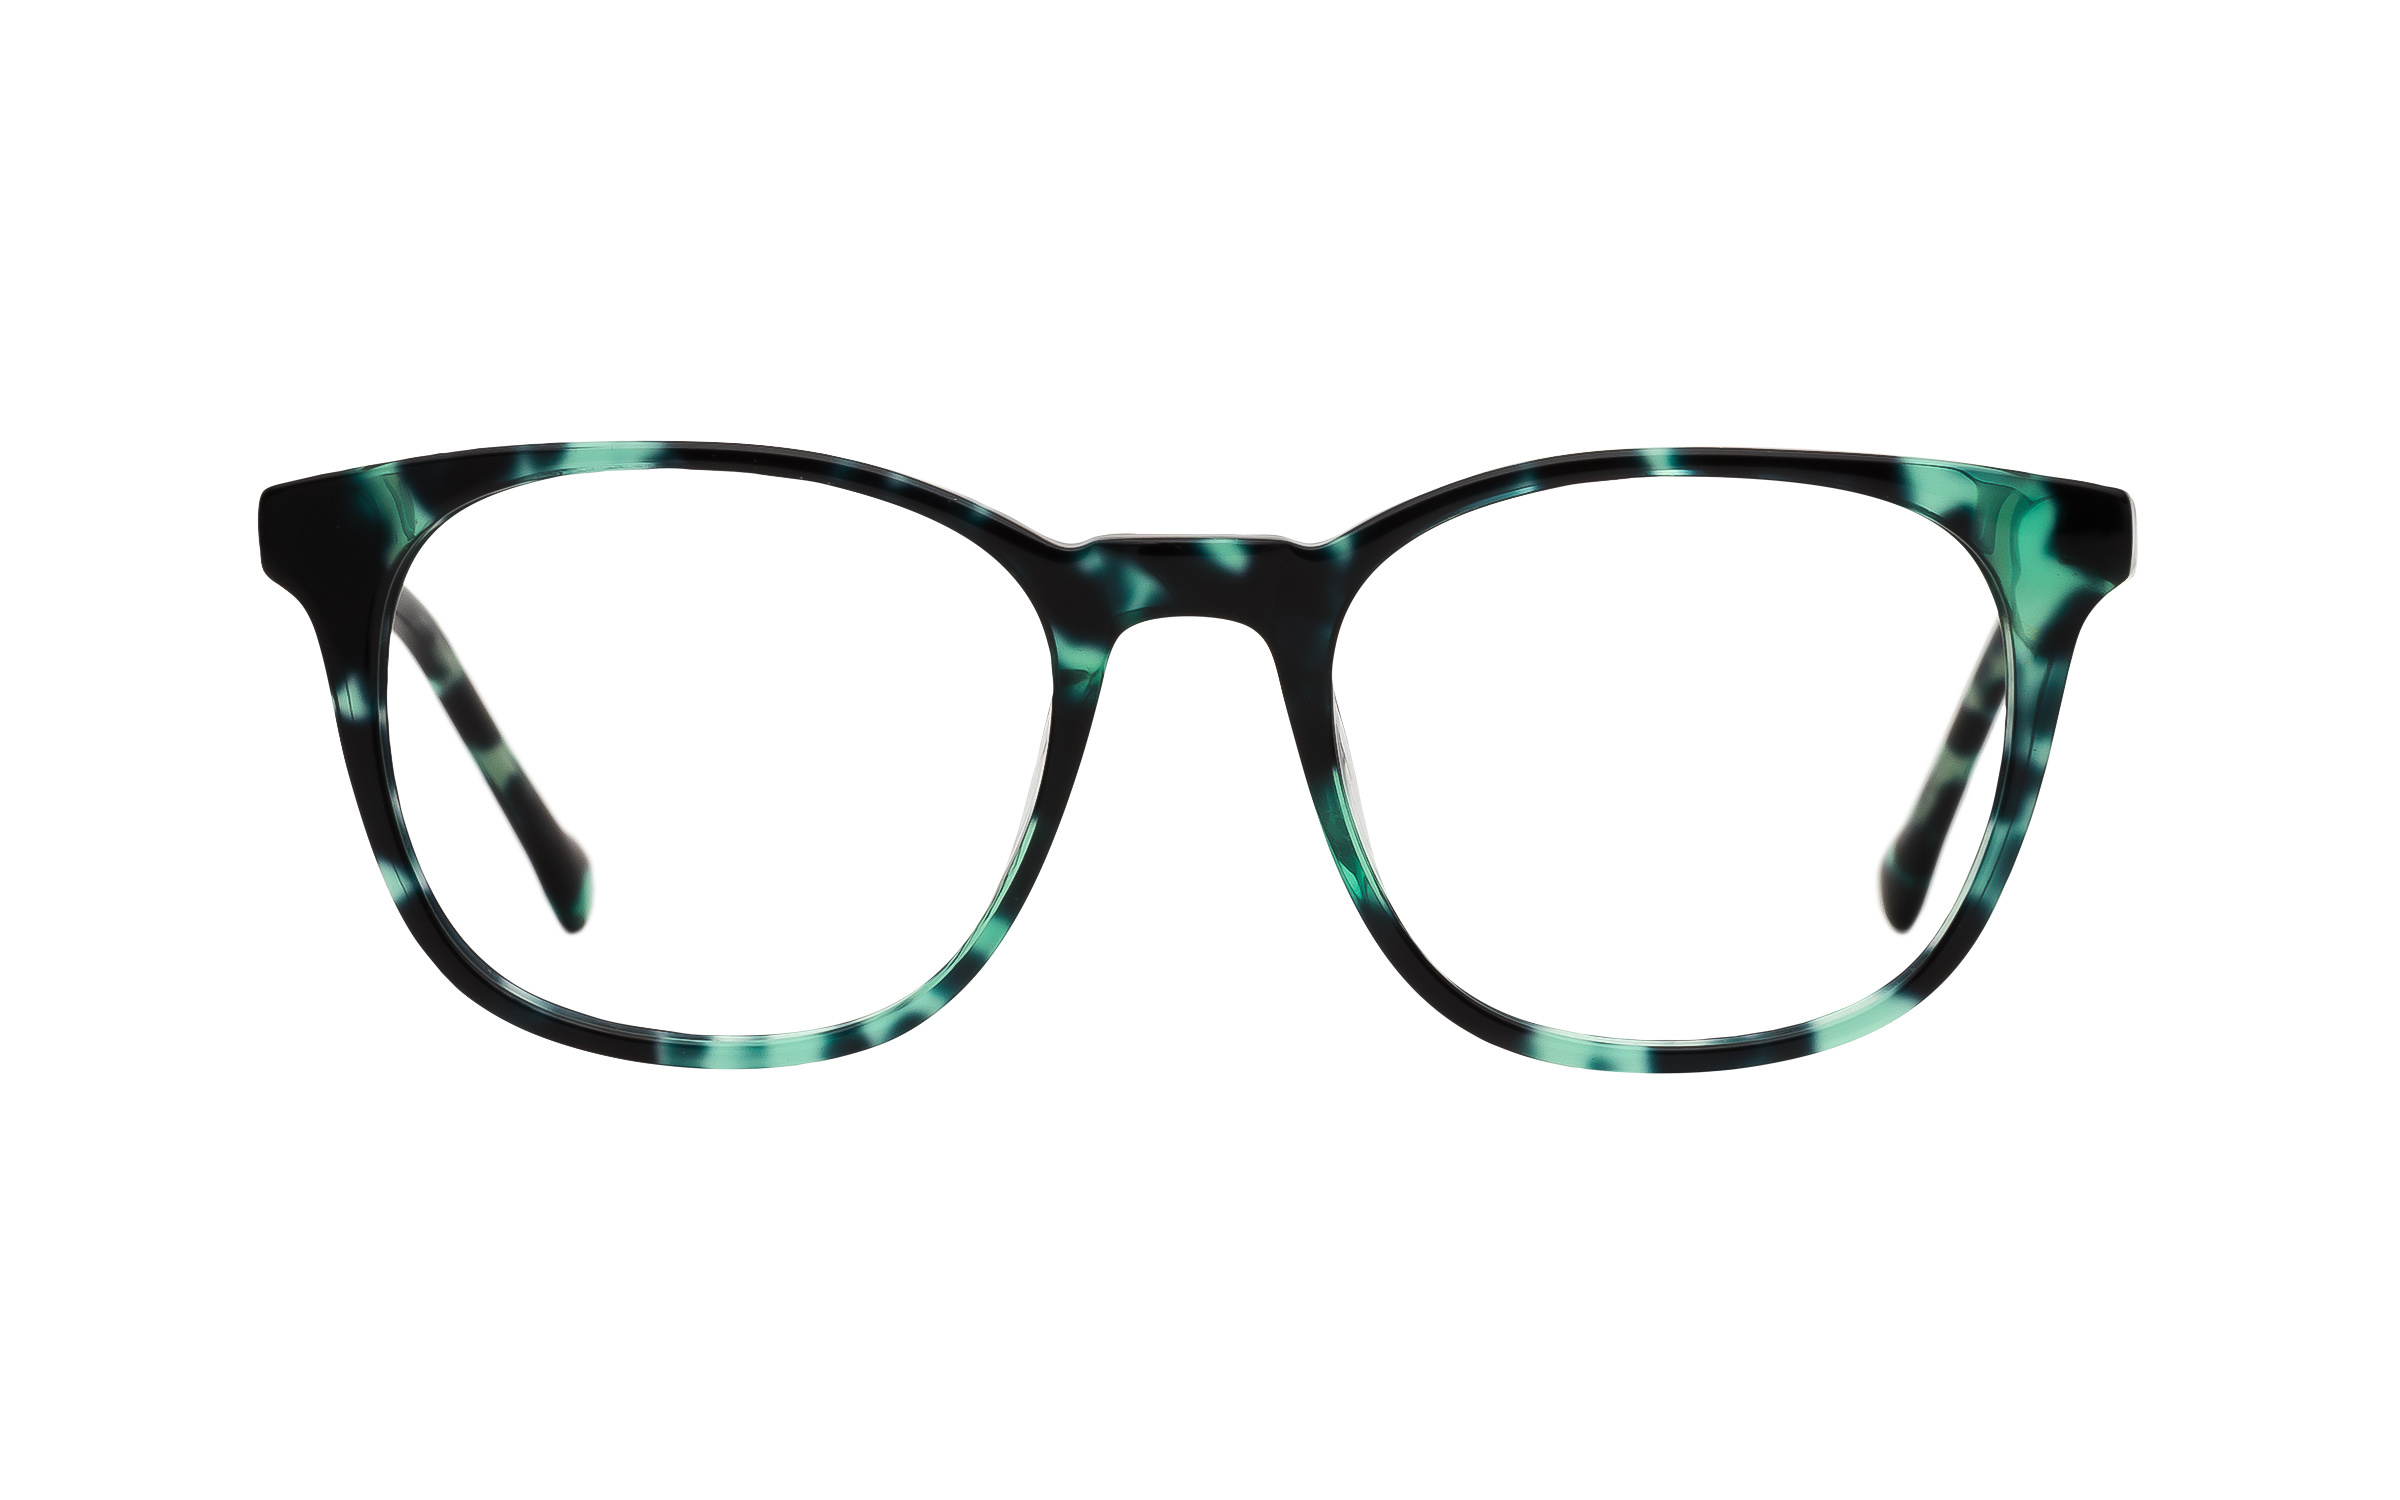 7 for All Mankind Glasses D-Frame Green/Tortoise Acetate Online Clearly